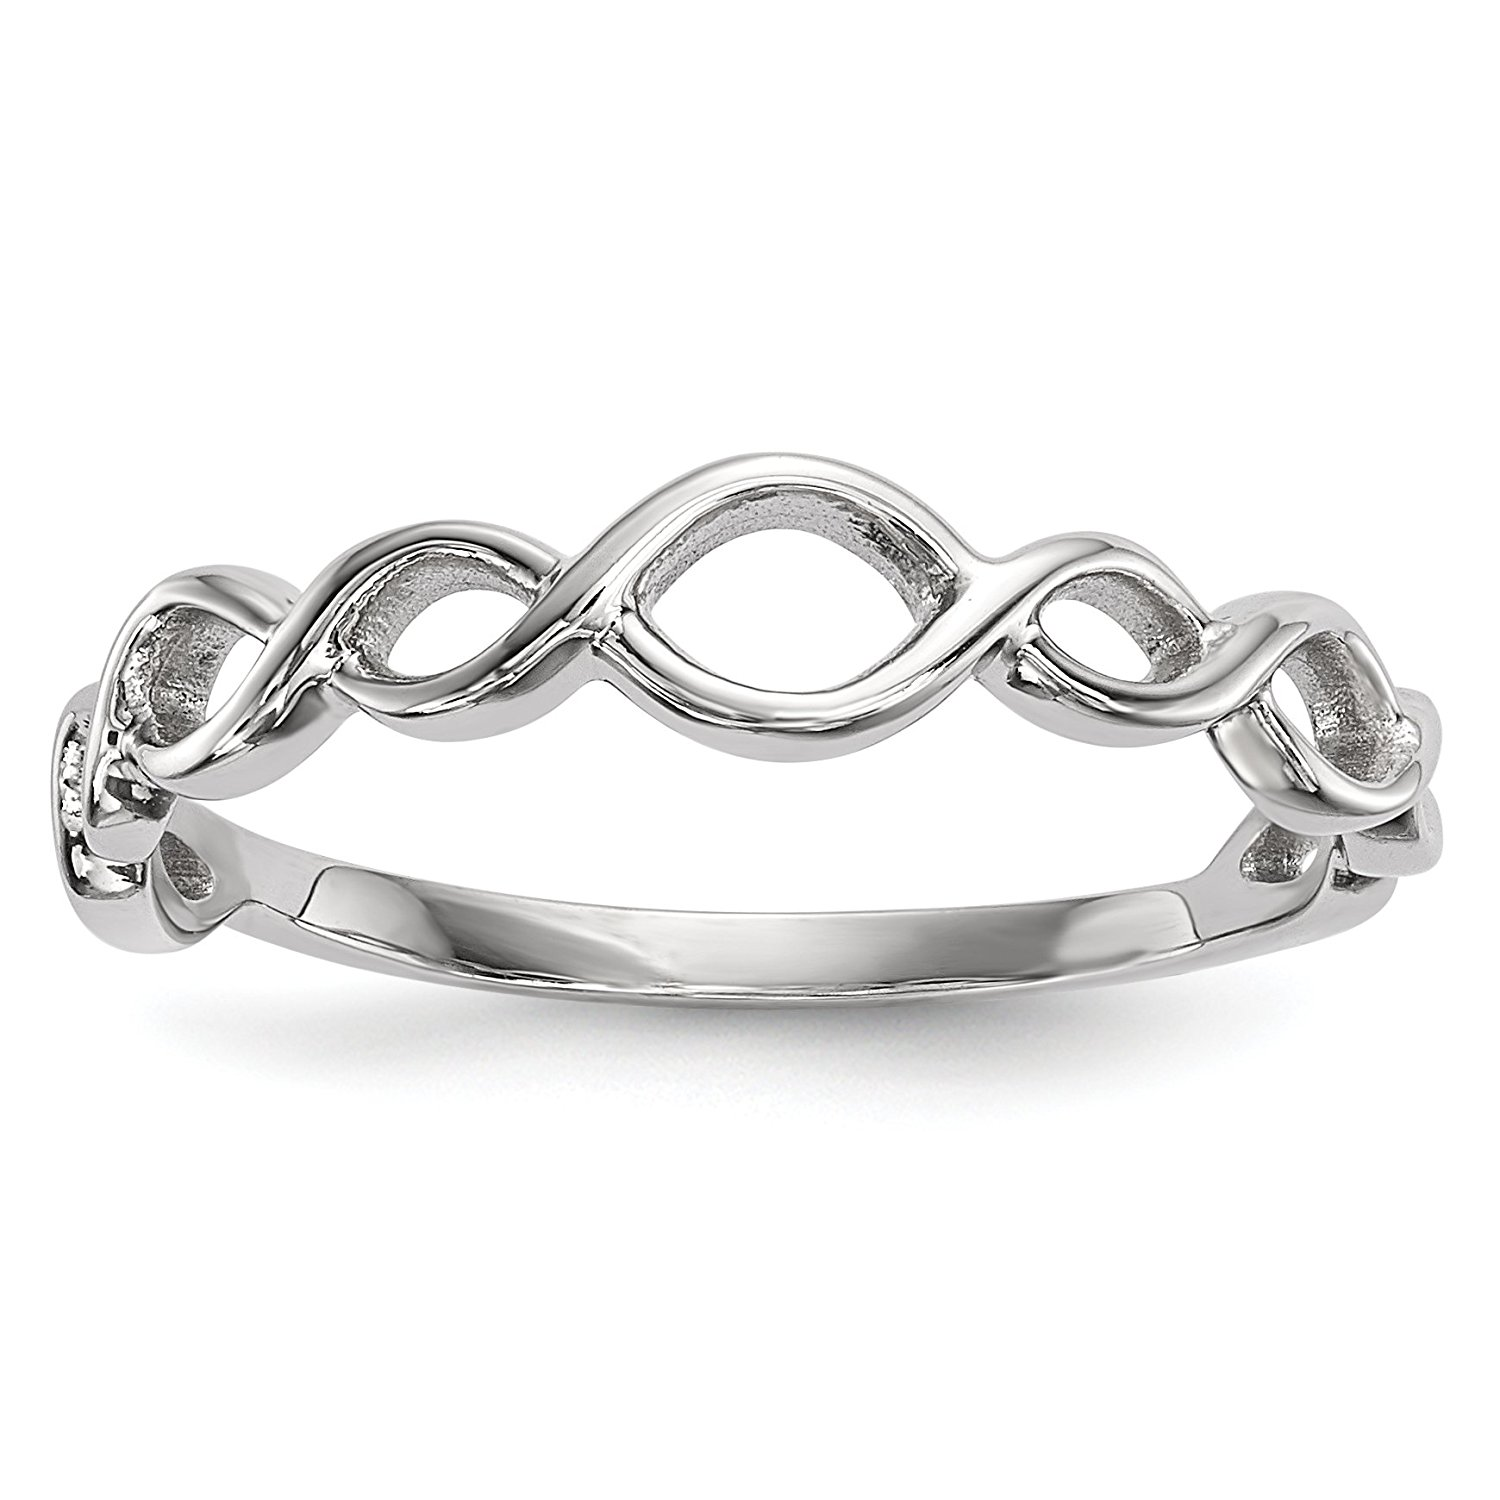 ICE CARATS 14k White Gold Twisted Loops Band Ring Infinity